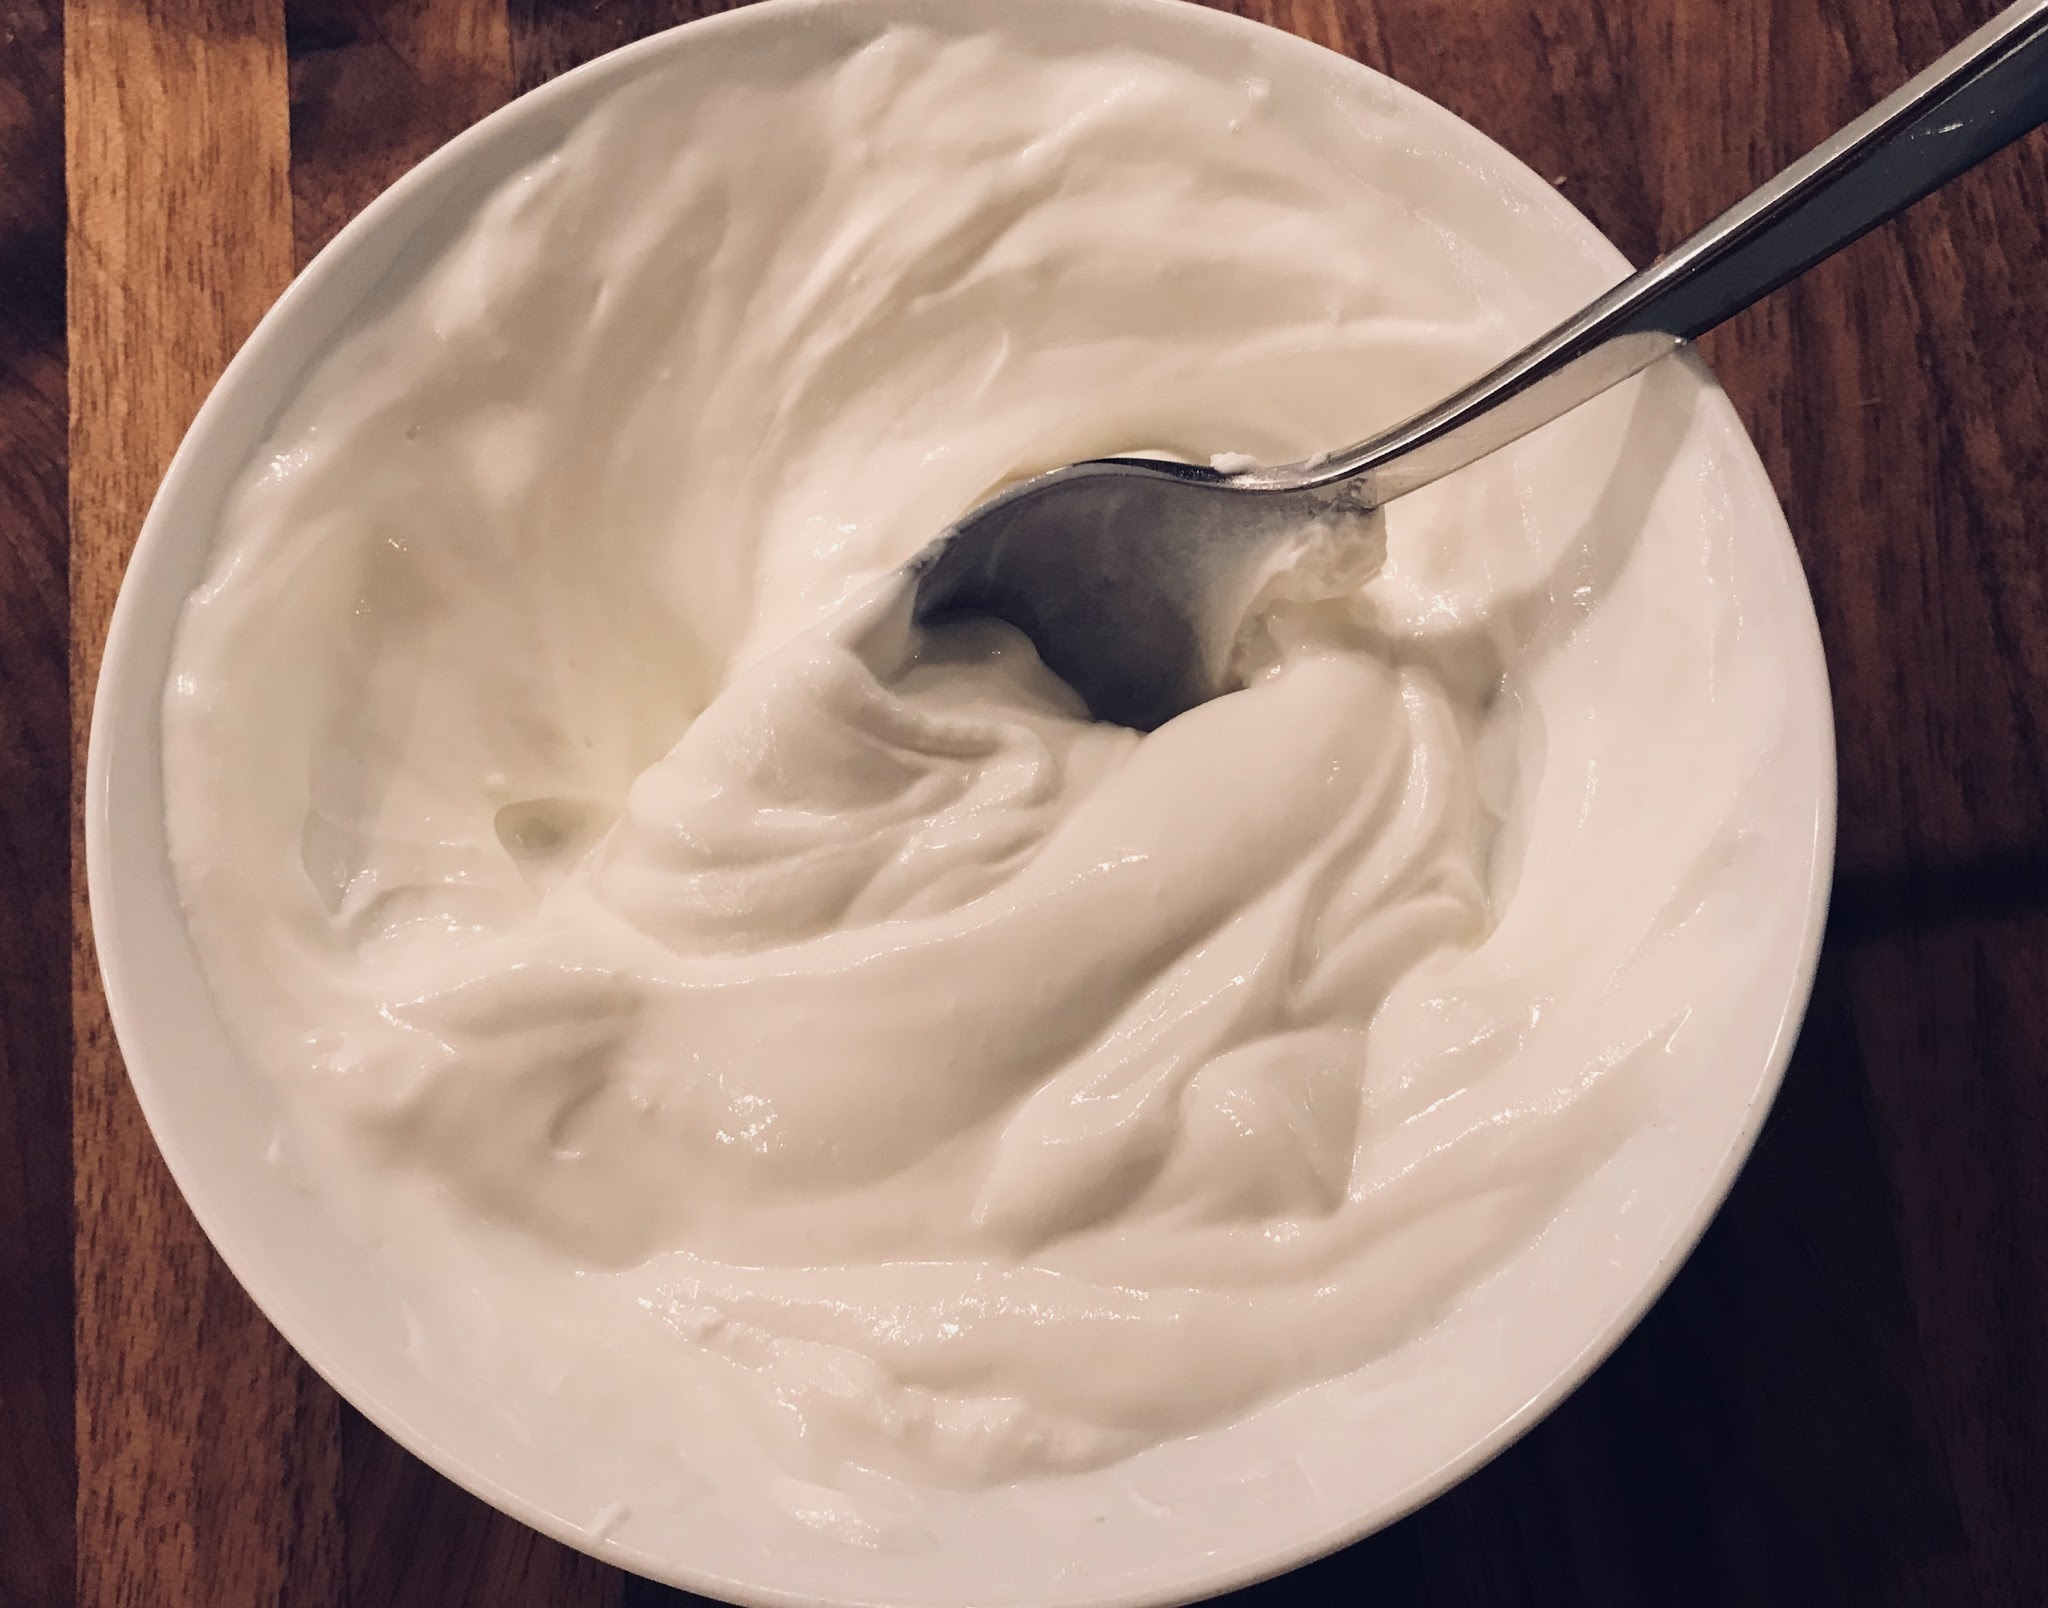 Friday Favorite: Greek Yogurt!